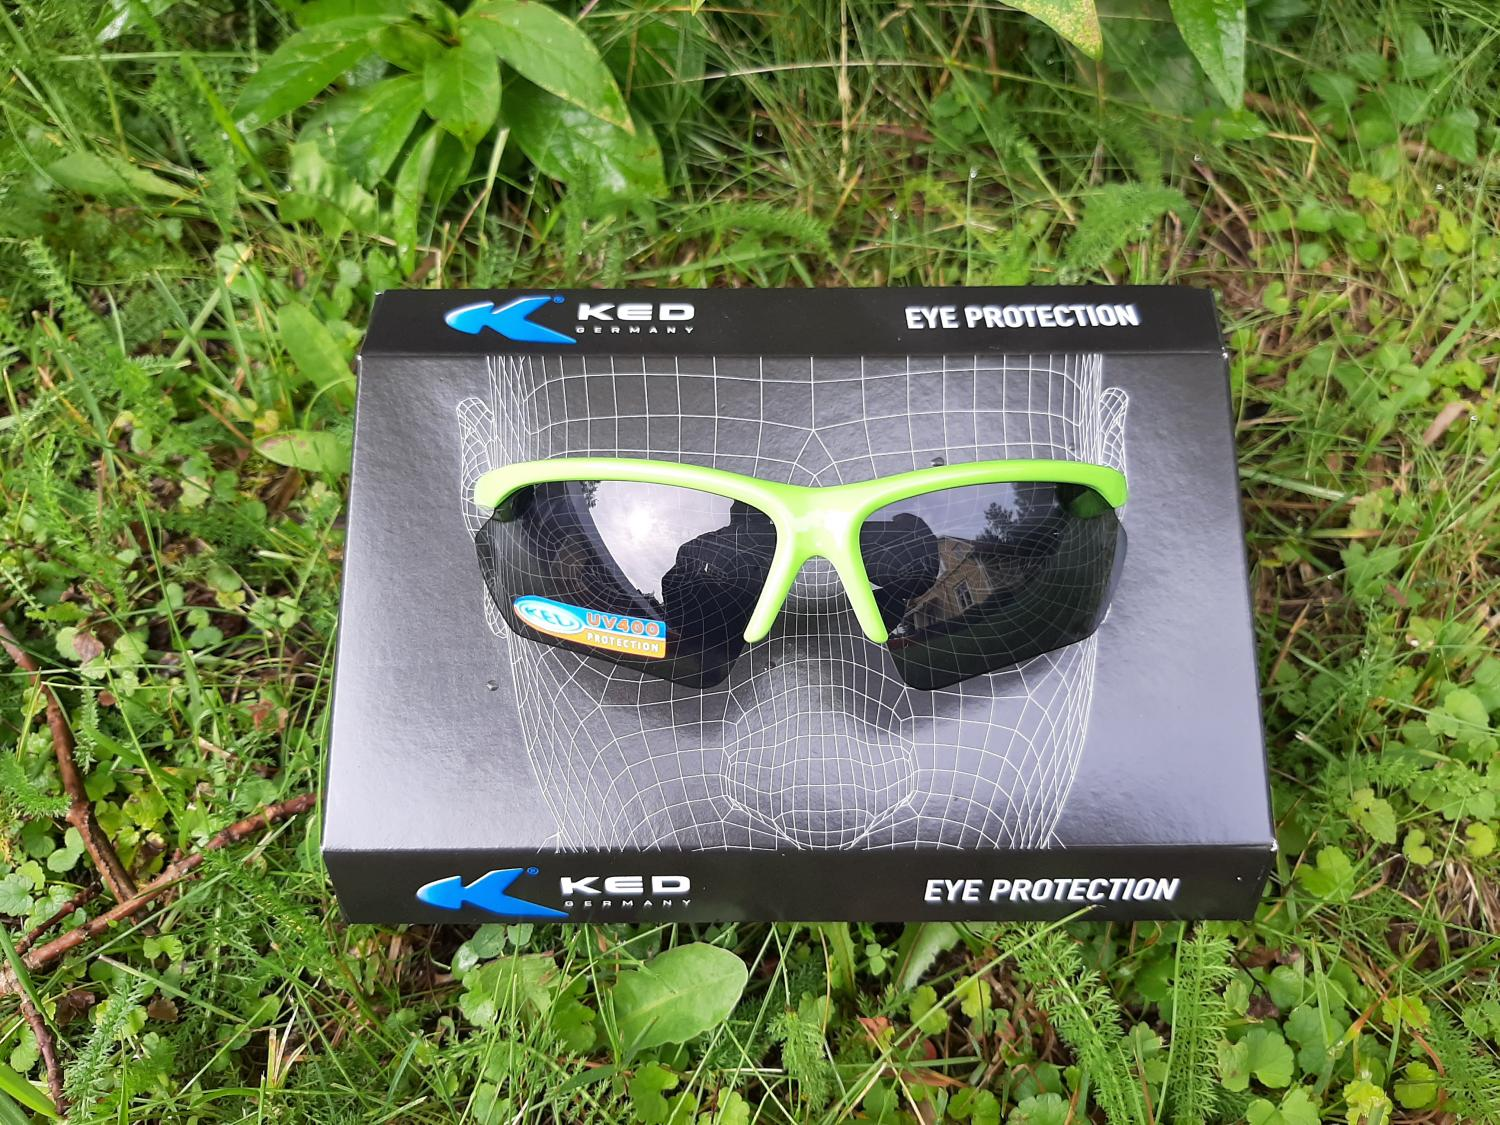 Ked eye protection aurinkolasit